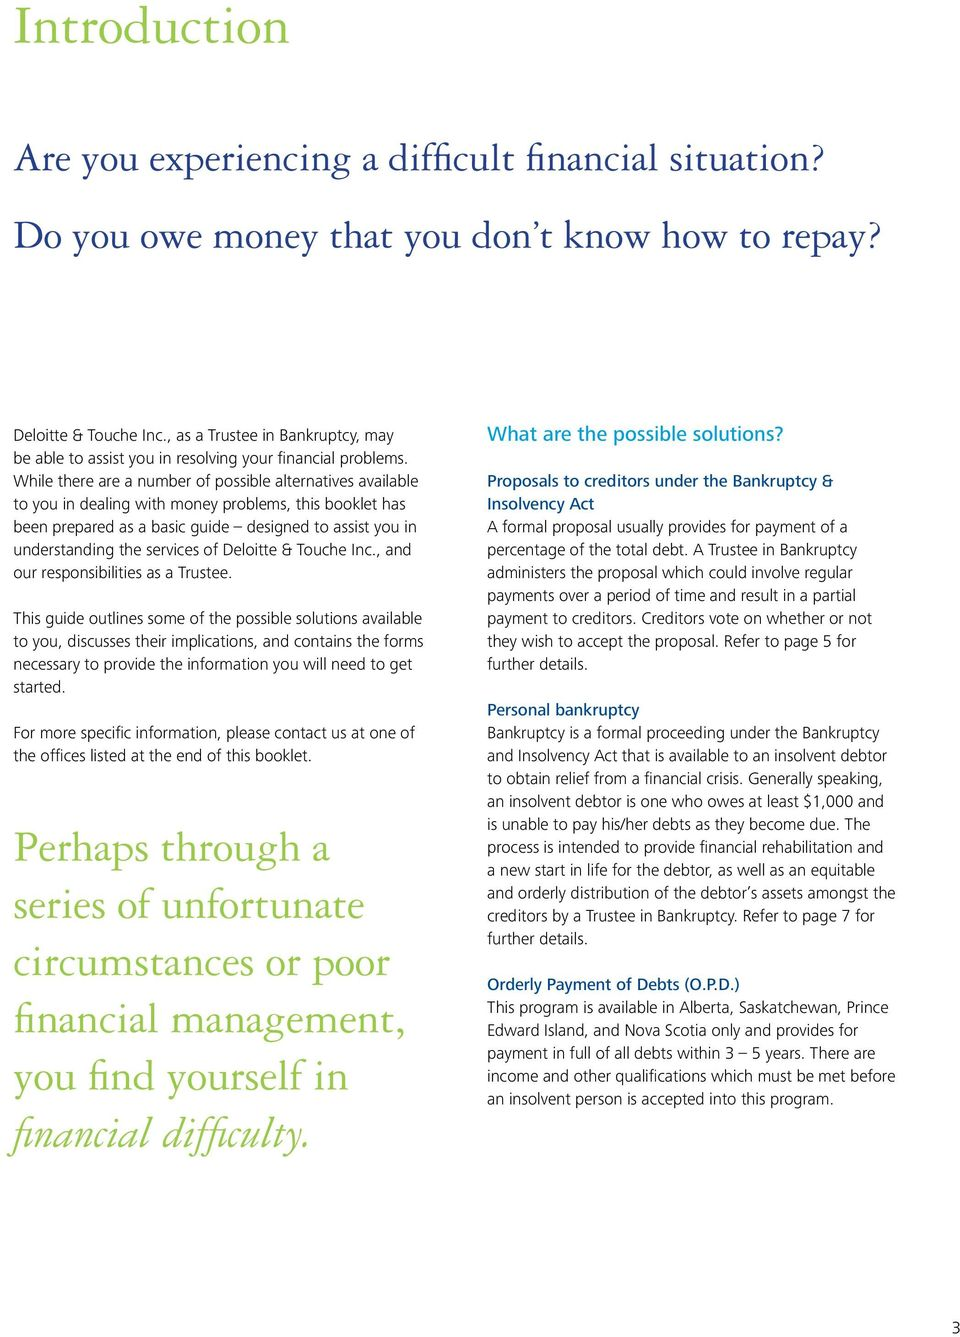 While there are a number of possible alternatives available to you in dealing with money problems, this booklet has been prepared as a basic guide designed to assist you in understanding the services